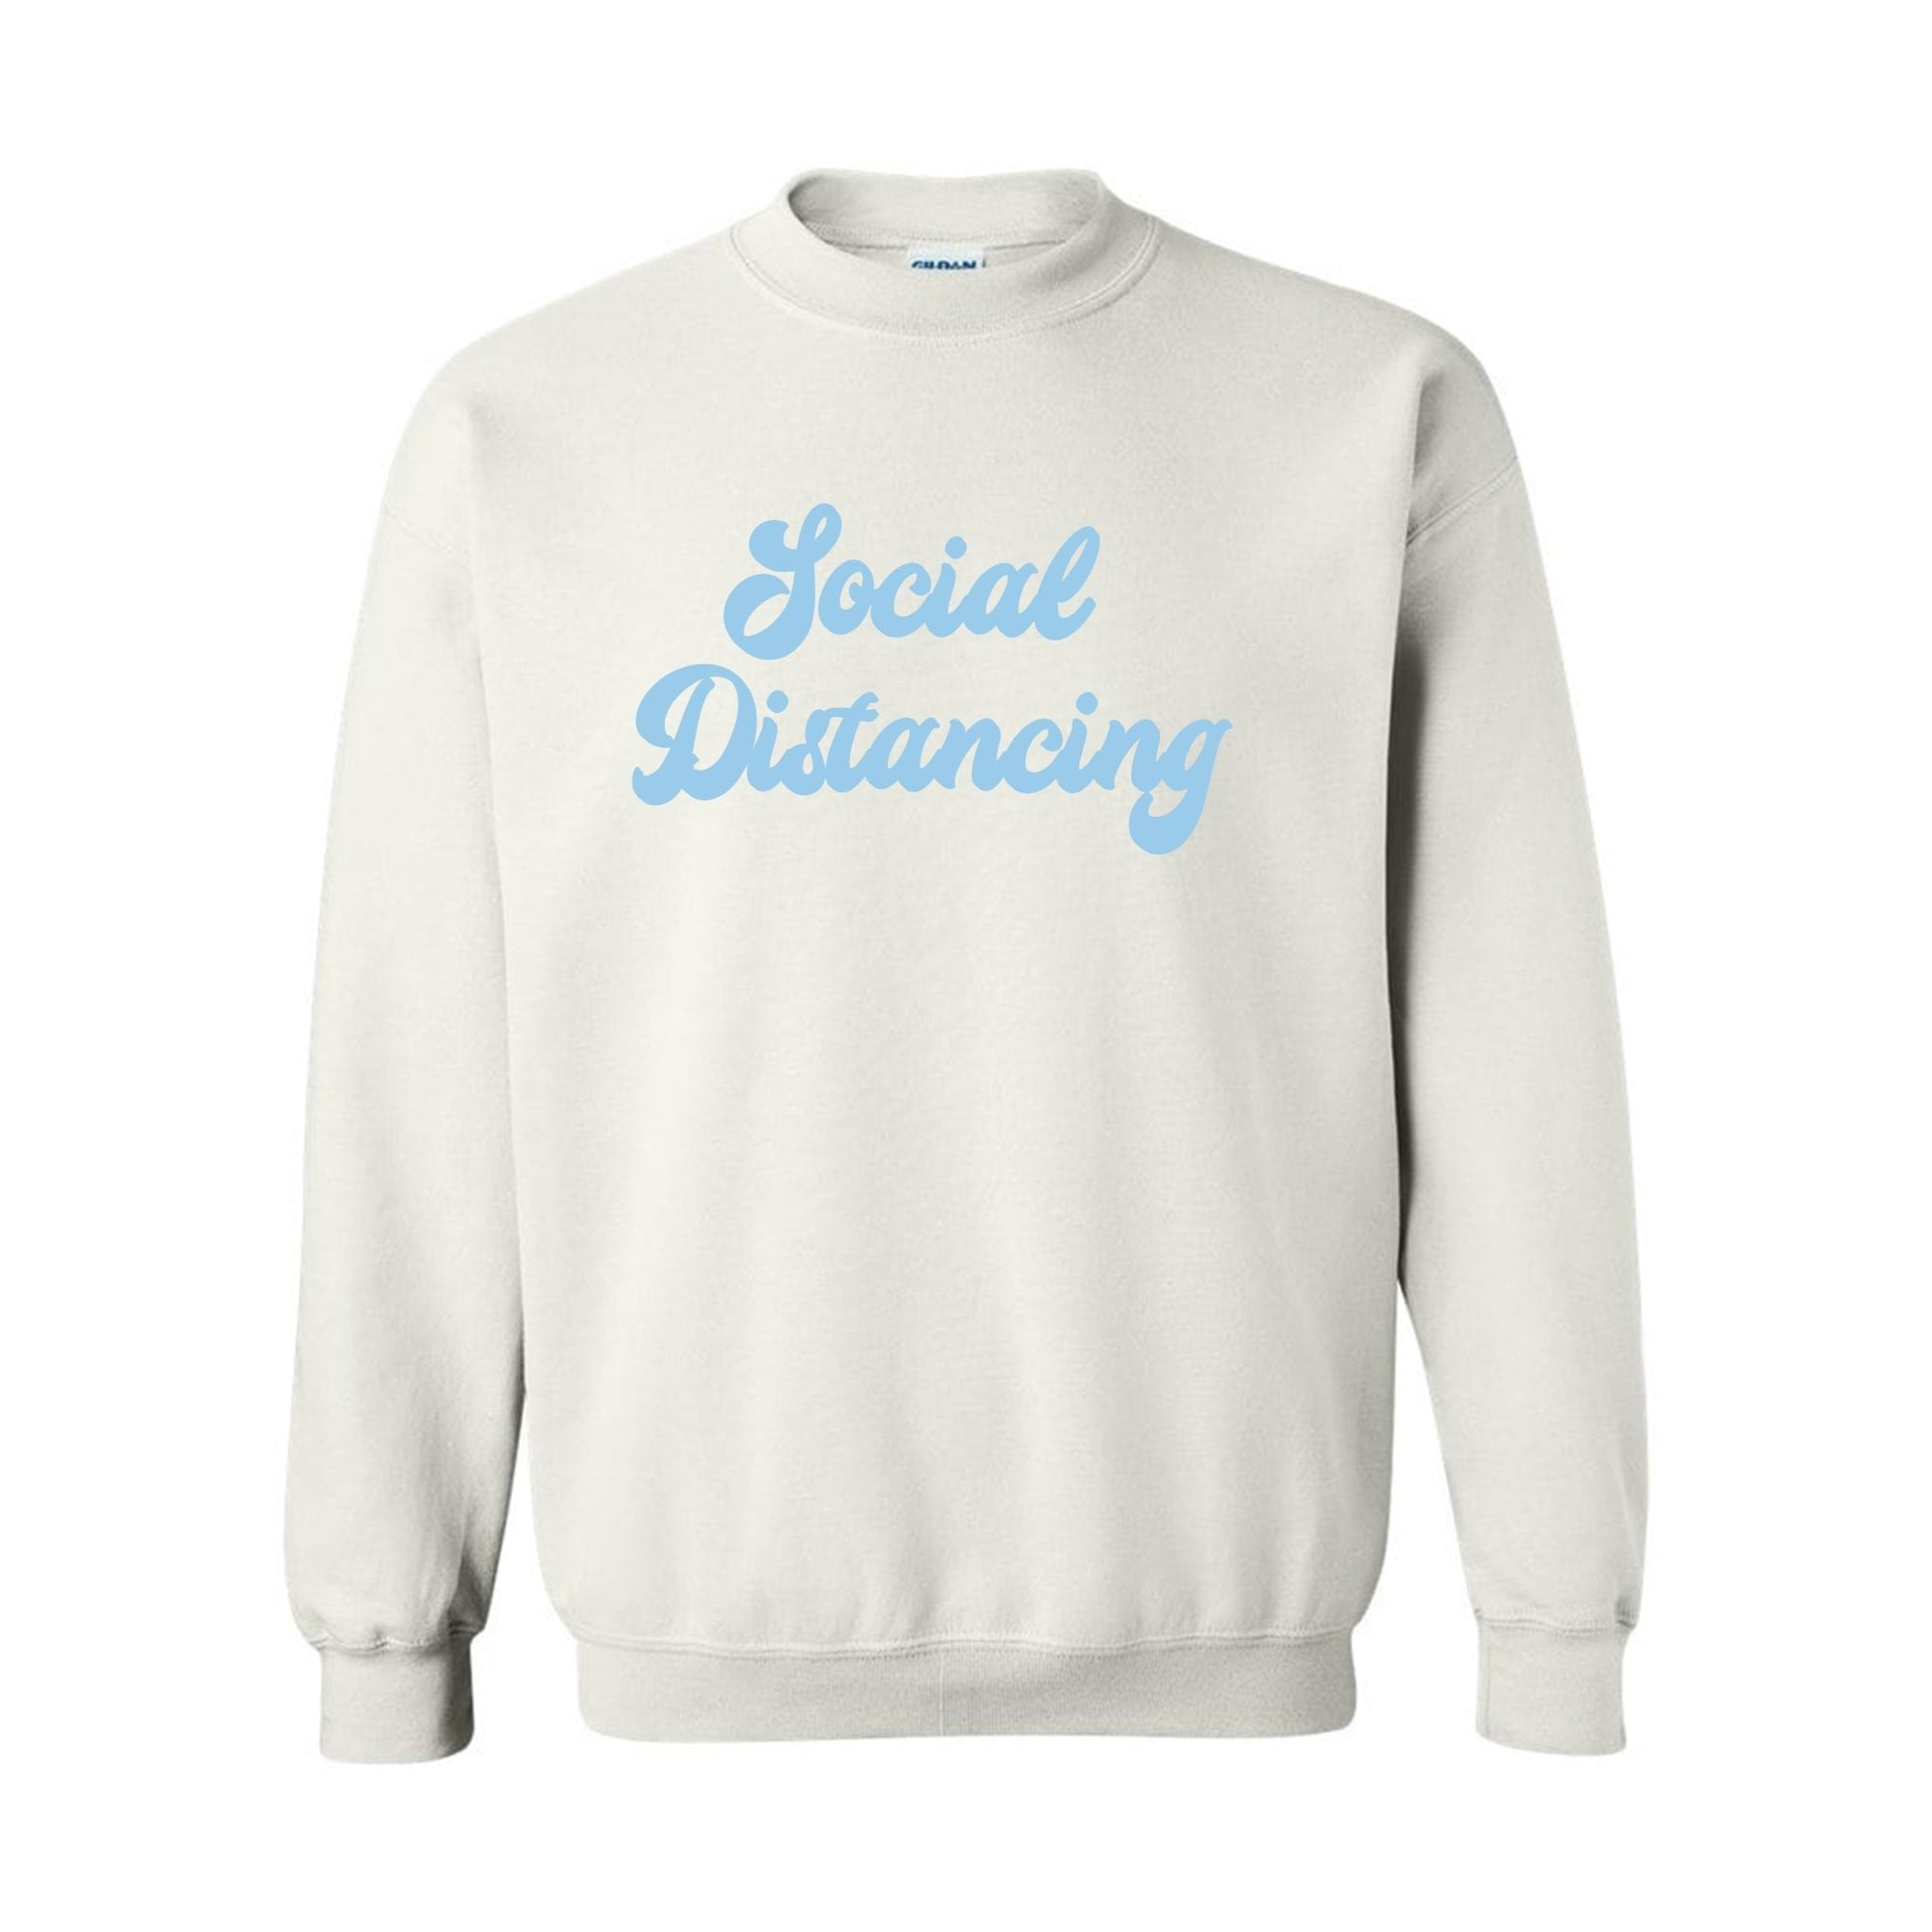 Social Distancing Sweatshirt - Sprinkled With Pink #bachelorette #custom #gifts